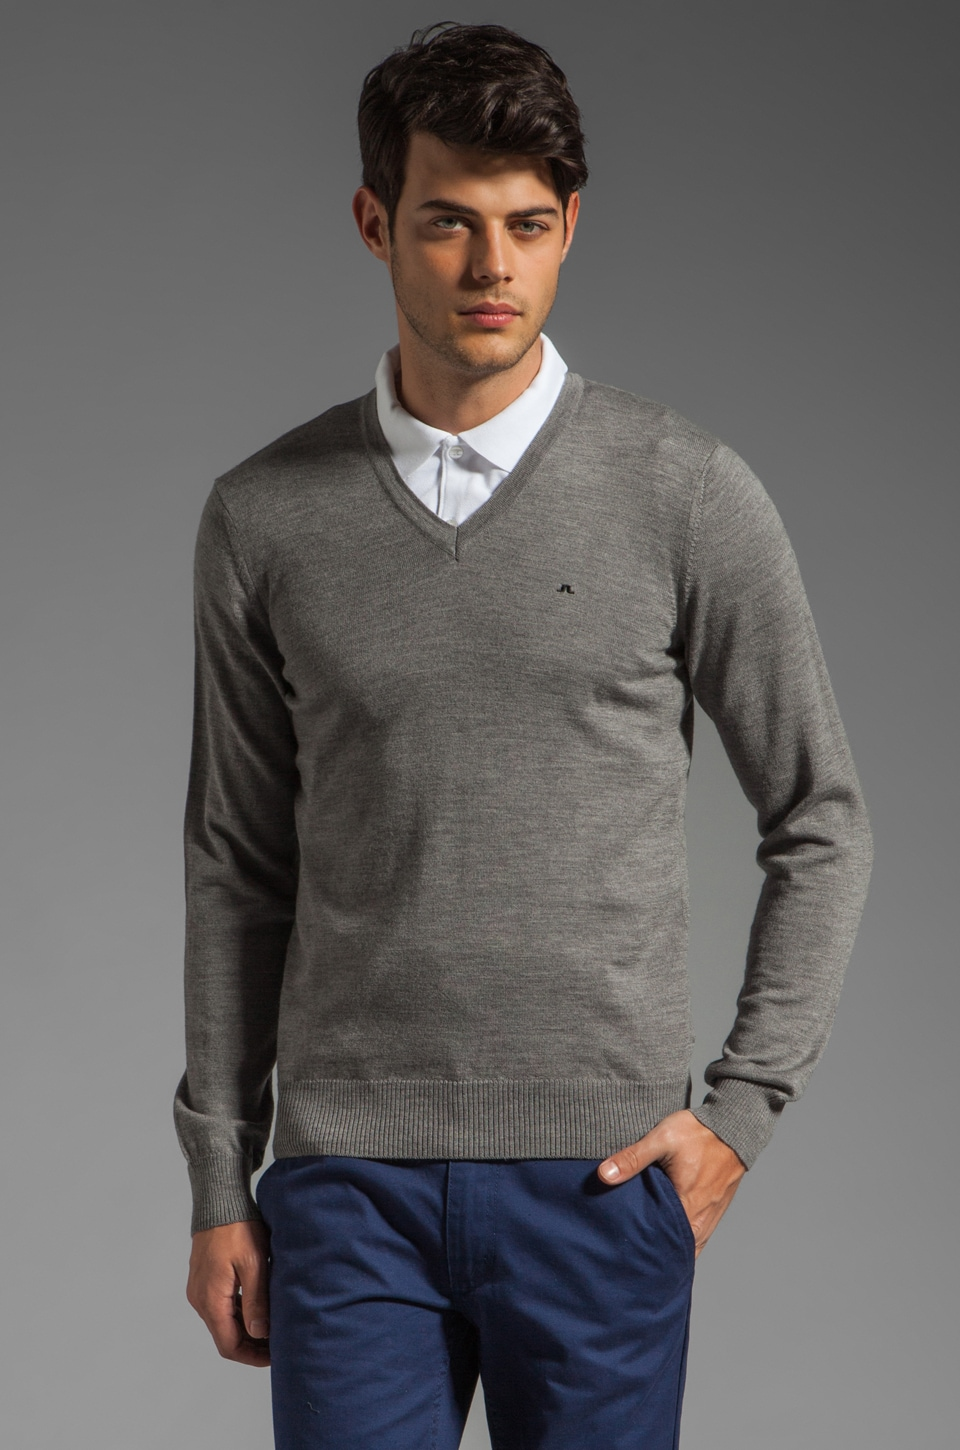 J. Lindeberg Lymann True Merino Sweater in Grey Melange